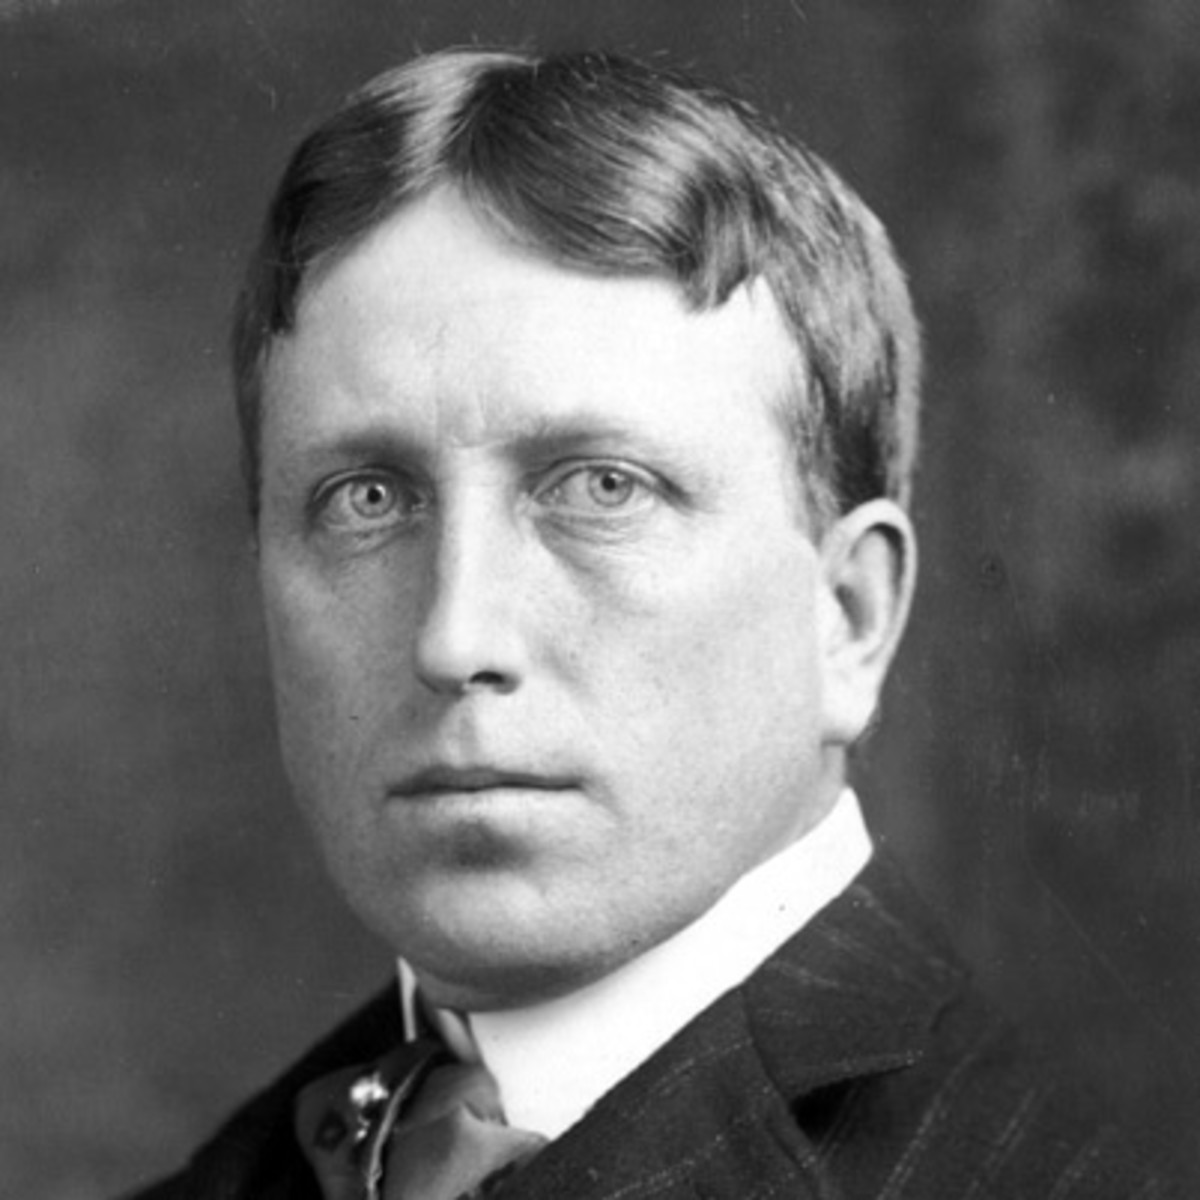 William Randolph Hearst. Hearst was one of the journalists to report on the destruction of The USS Maine and the Need for American intervention against Spain.